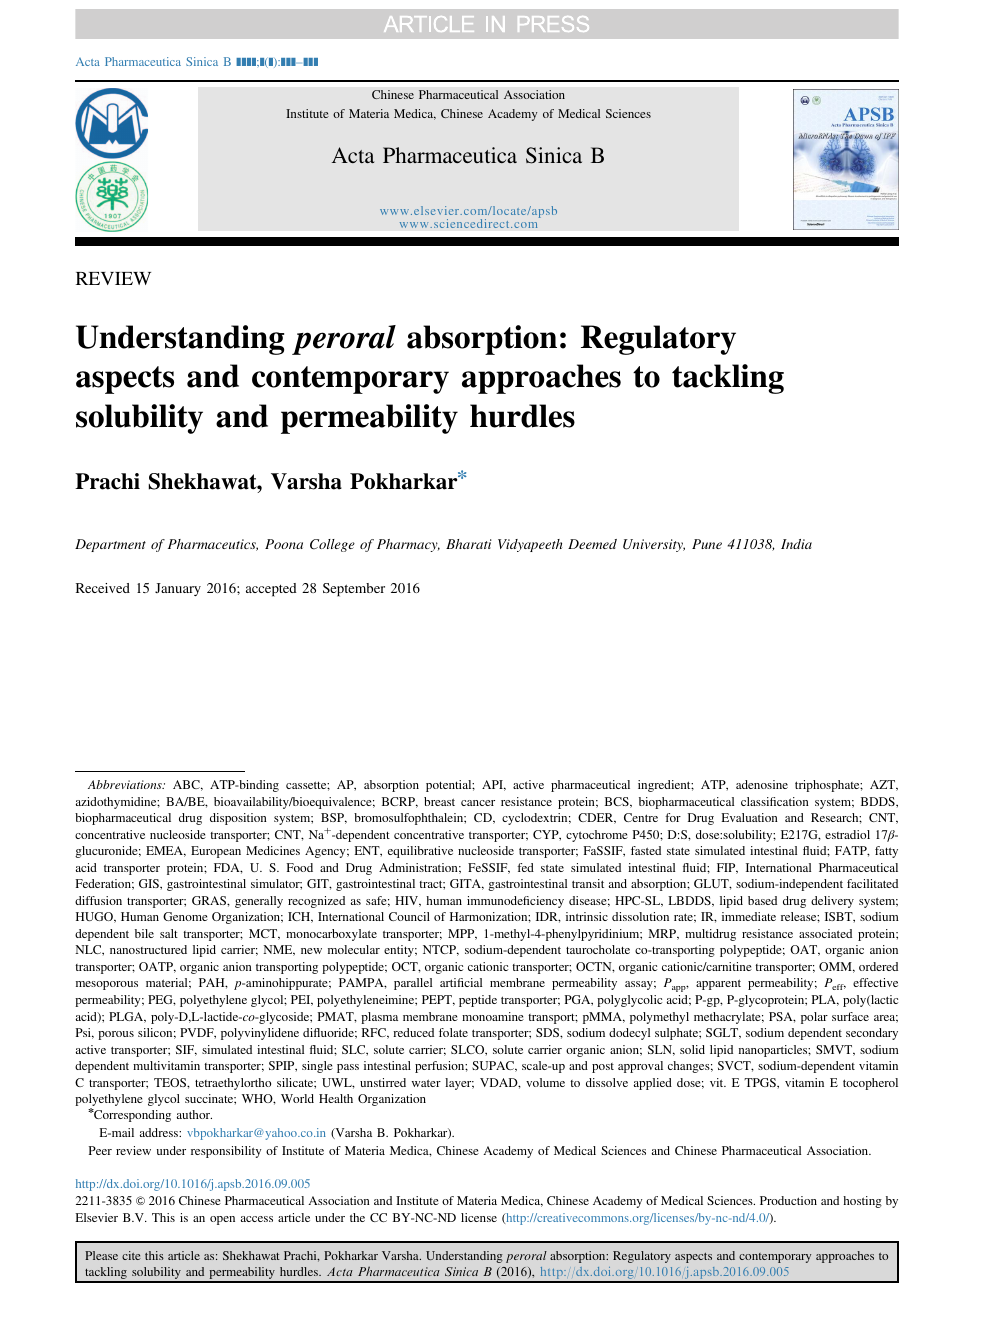 Understanding peroral absorption: Regulatory aspects and